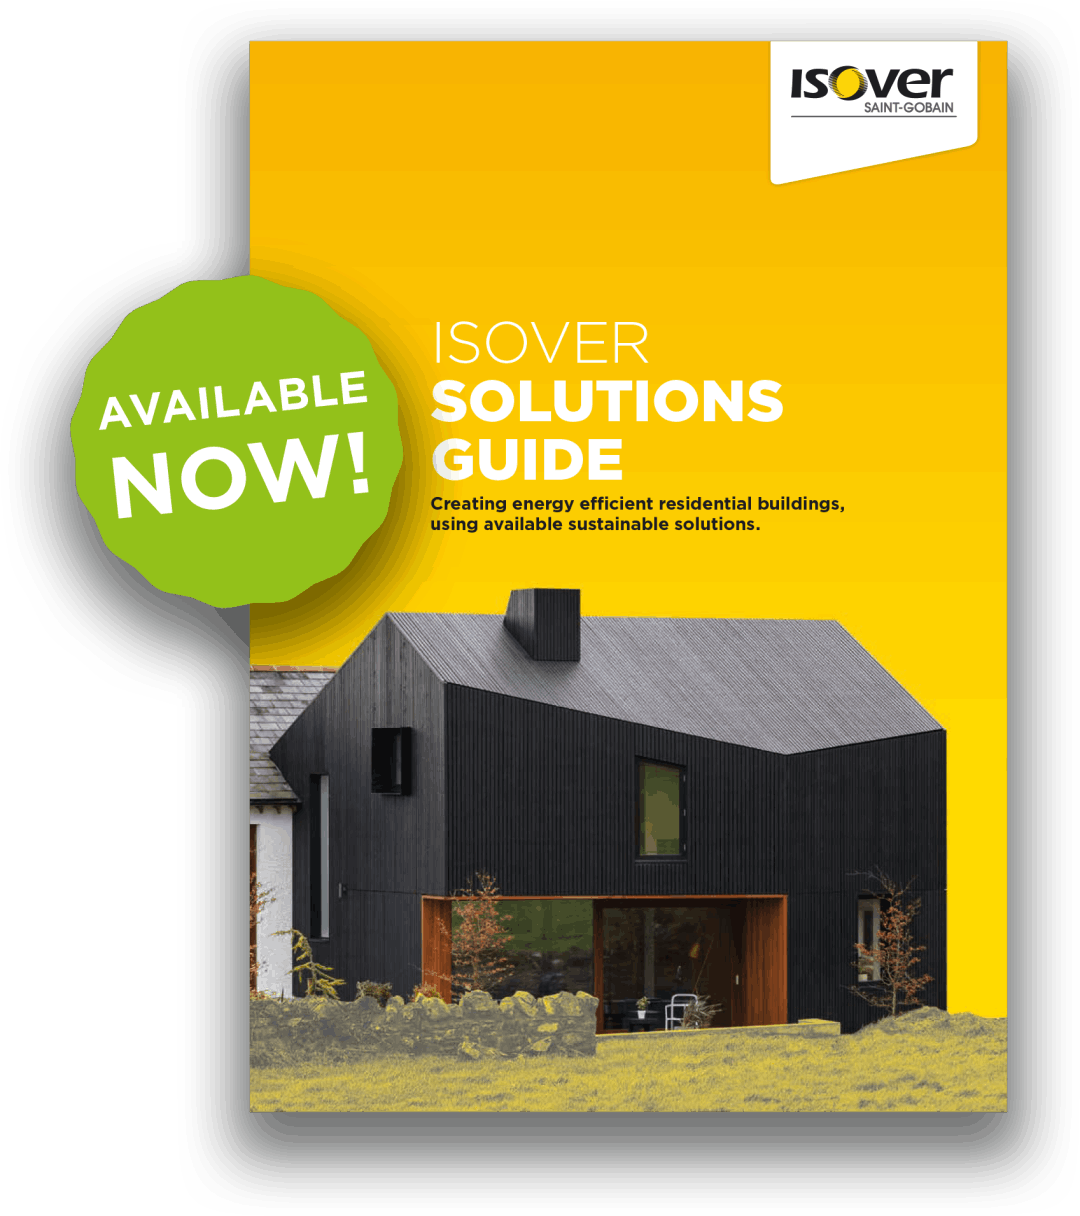 Available Now-ISOVER Solutions Guide